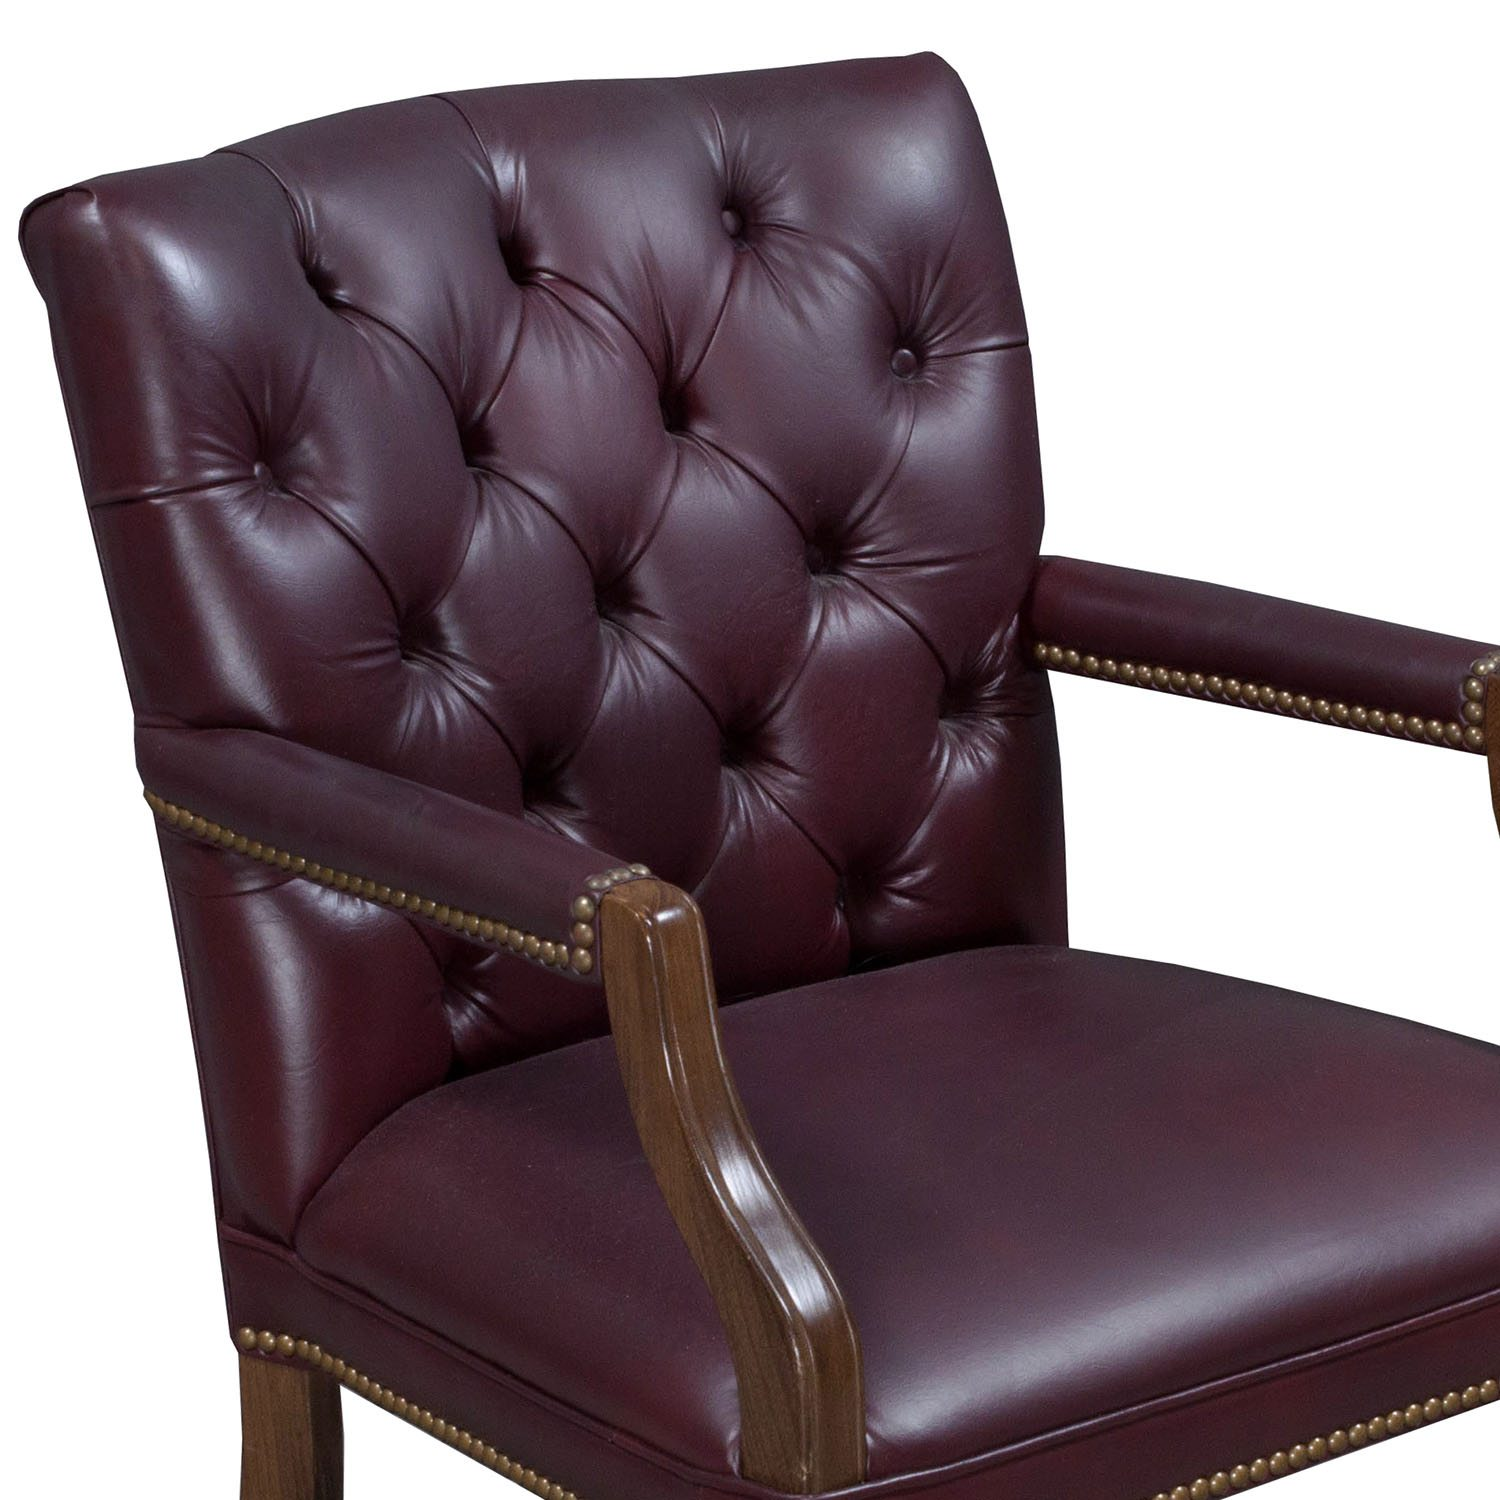 leather side chair folding lounge canada traditional walnut tufted burgundy